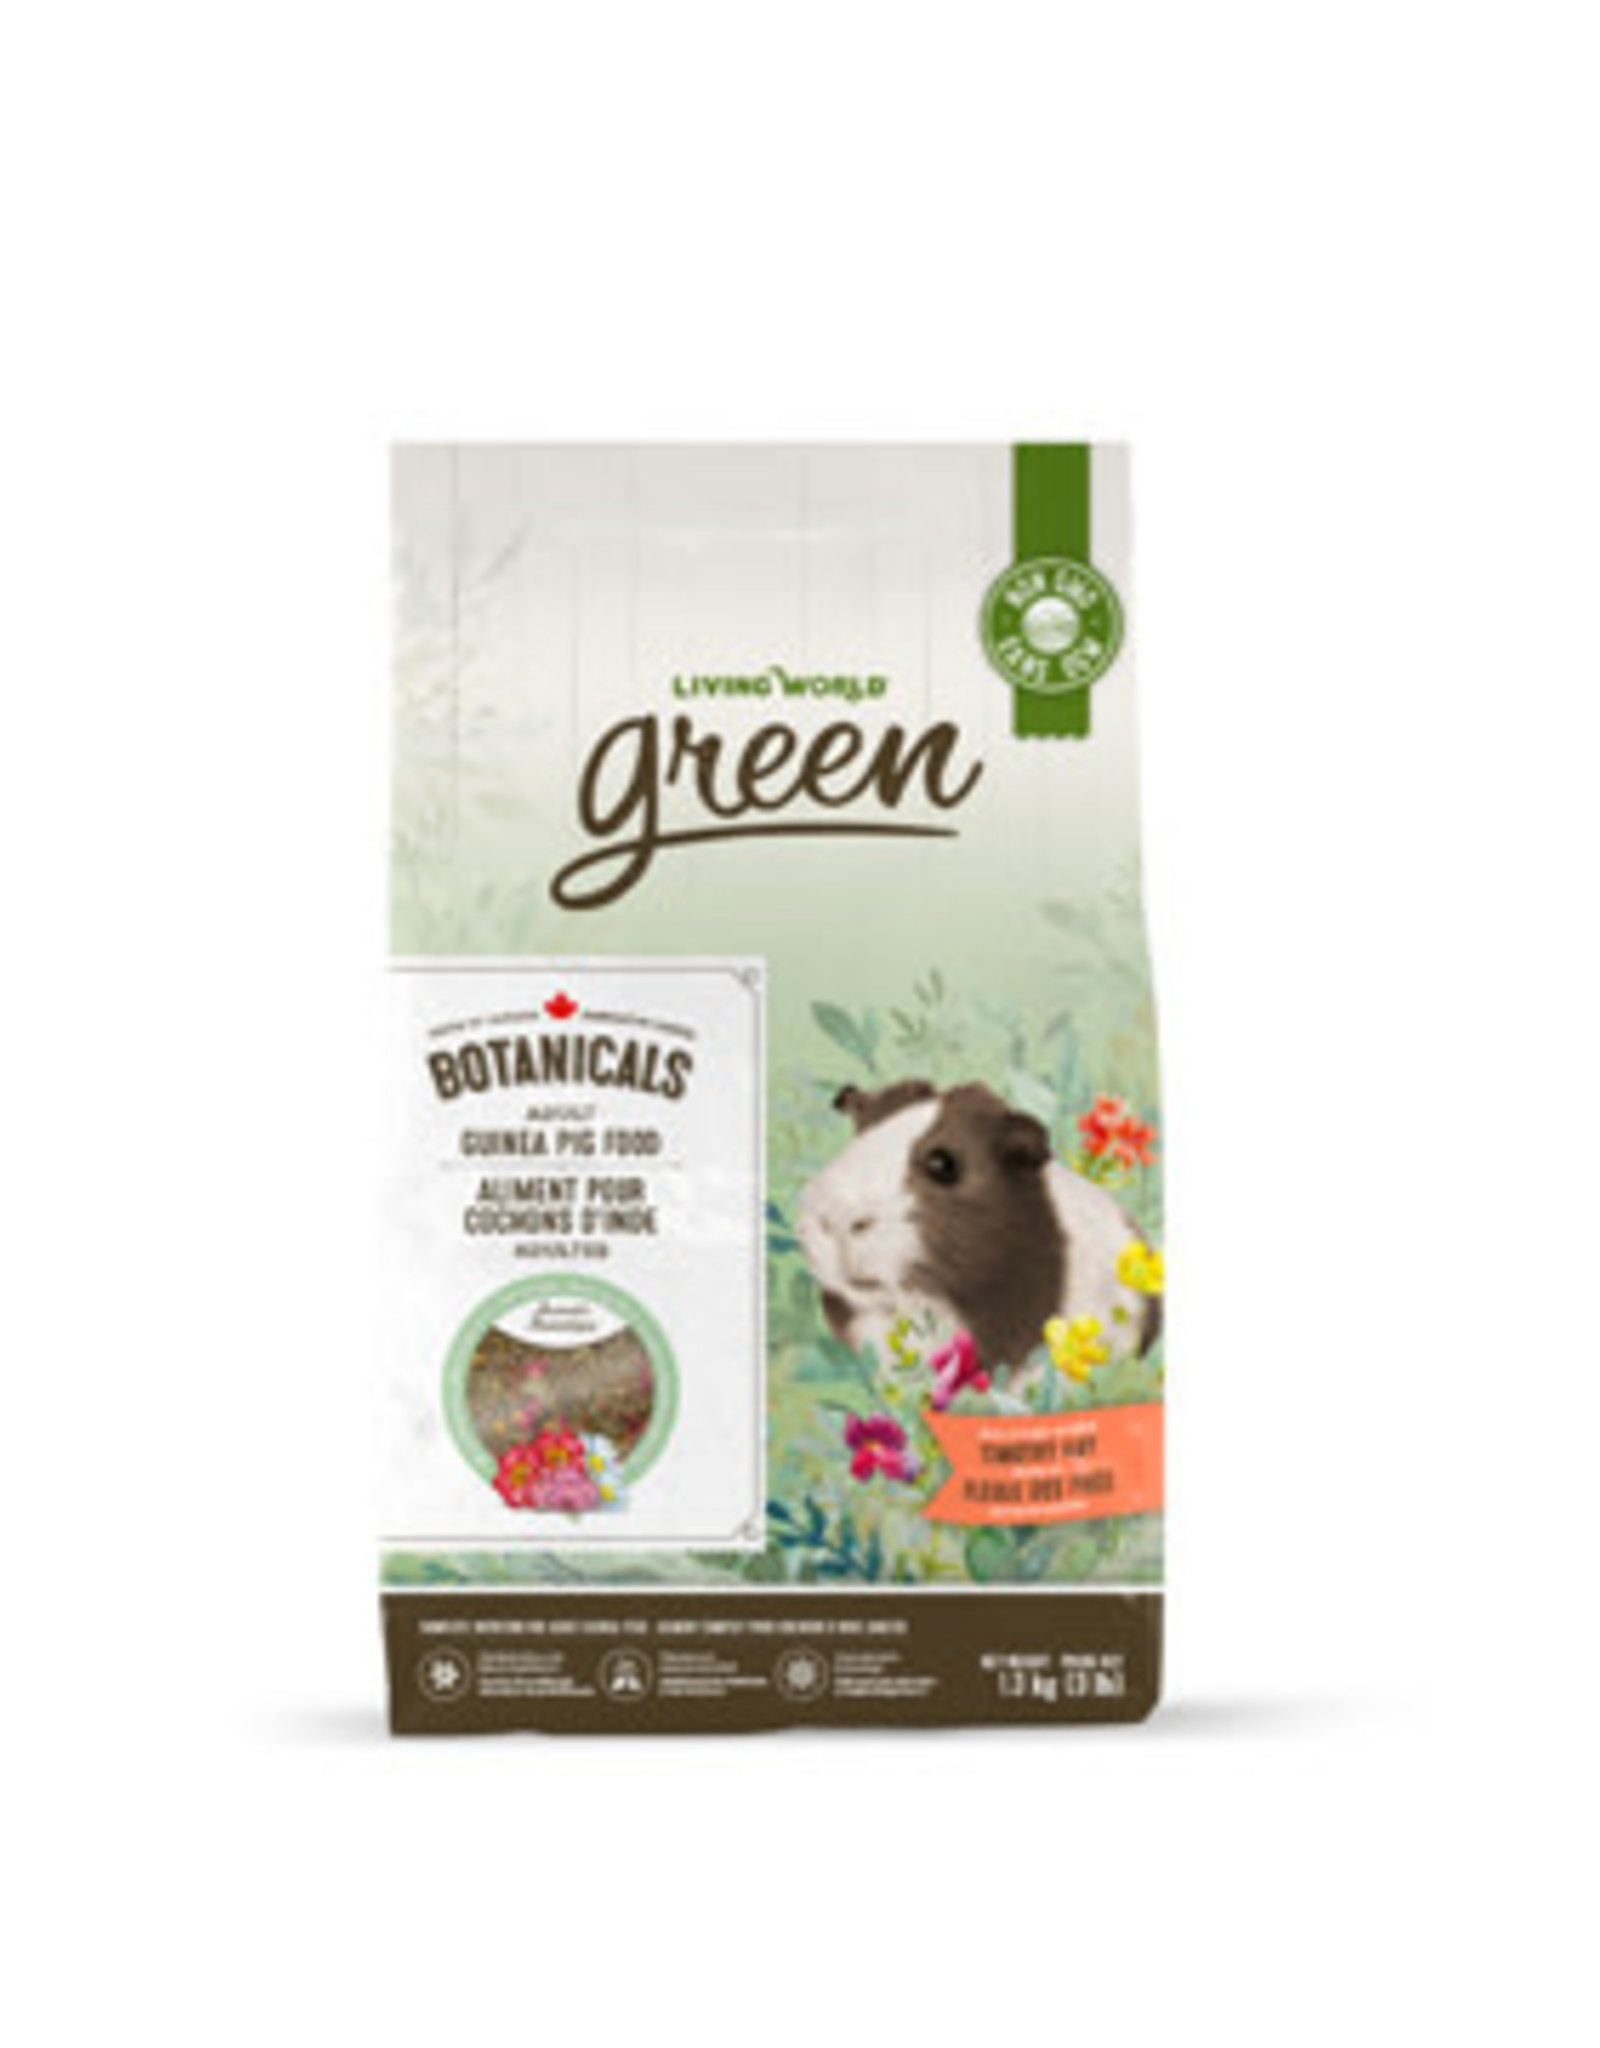 LIVING WORLD Living World Green Botanicals Adult Guinea Pig Food - 1.36 kg (3 lbs)